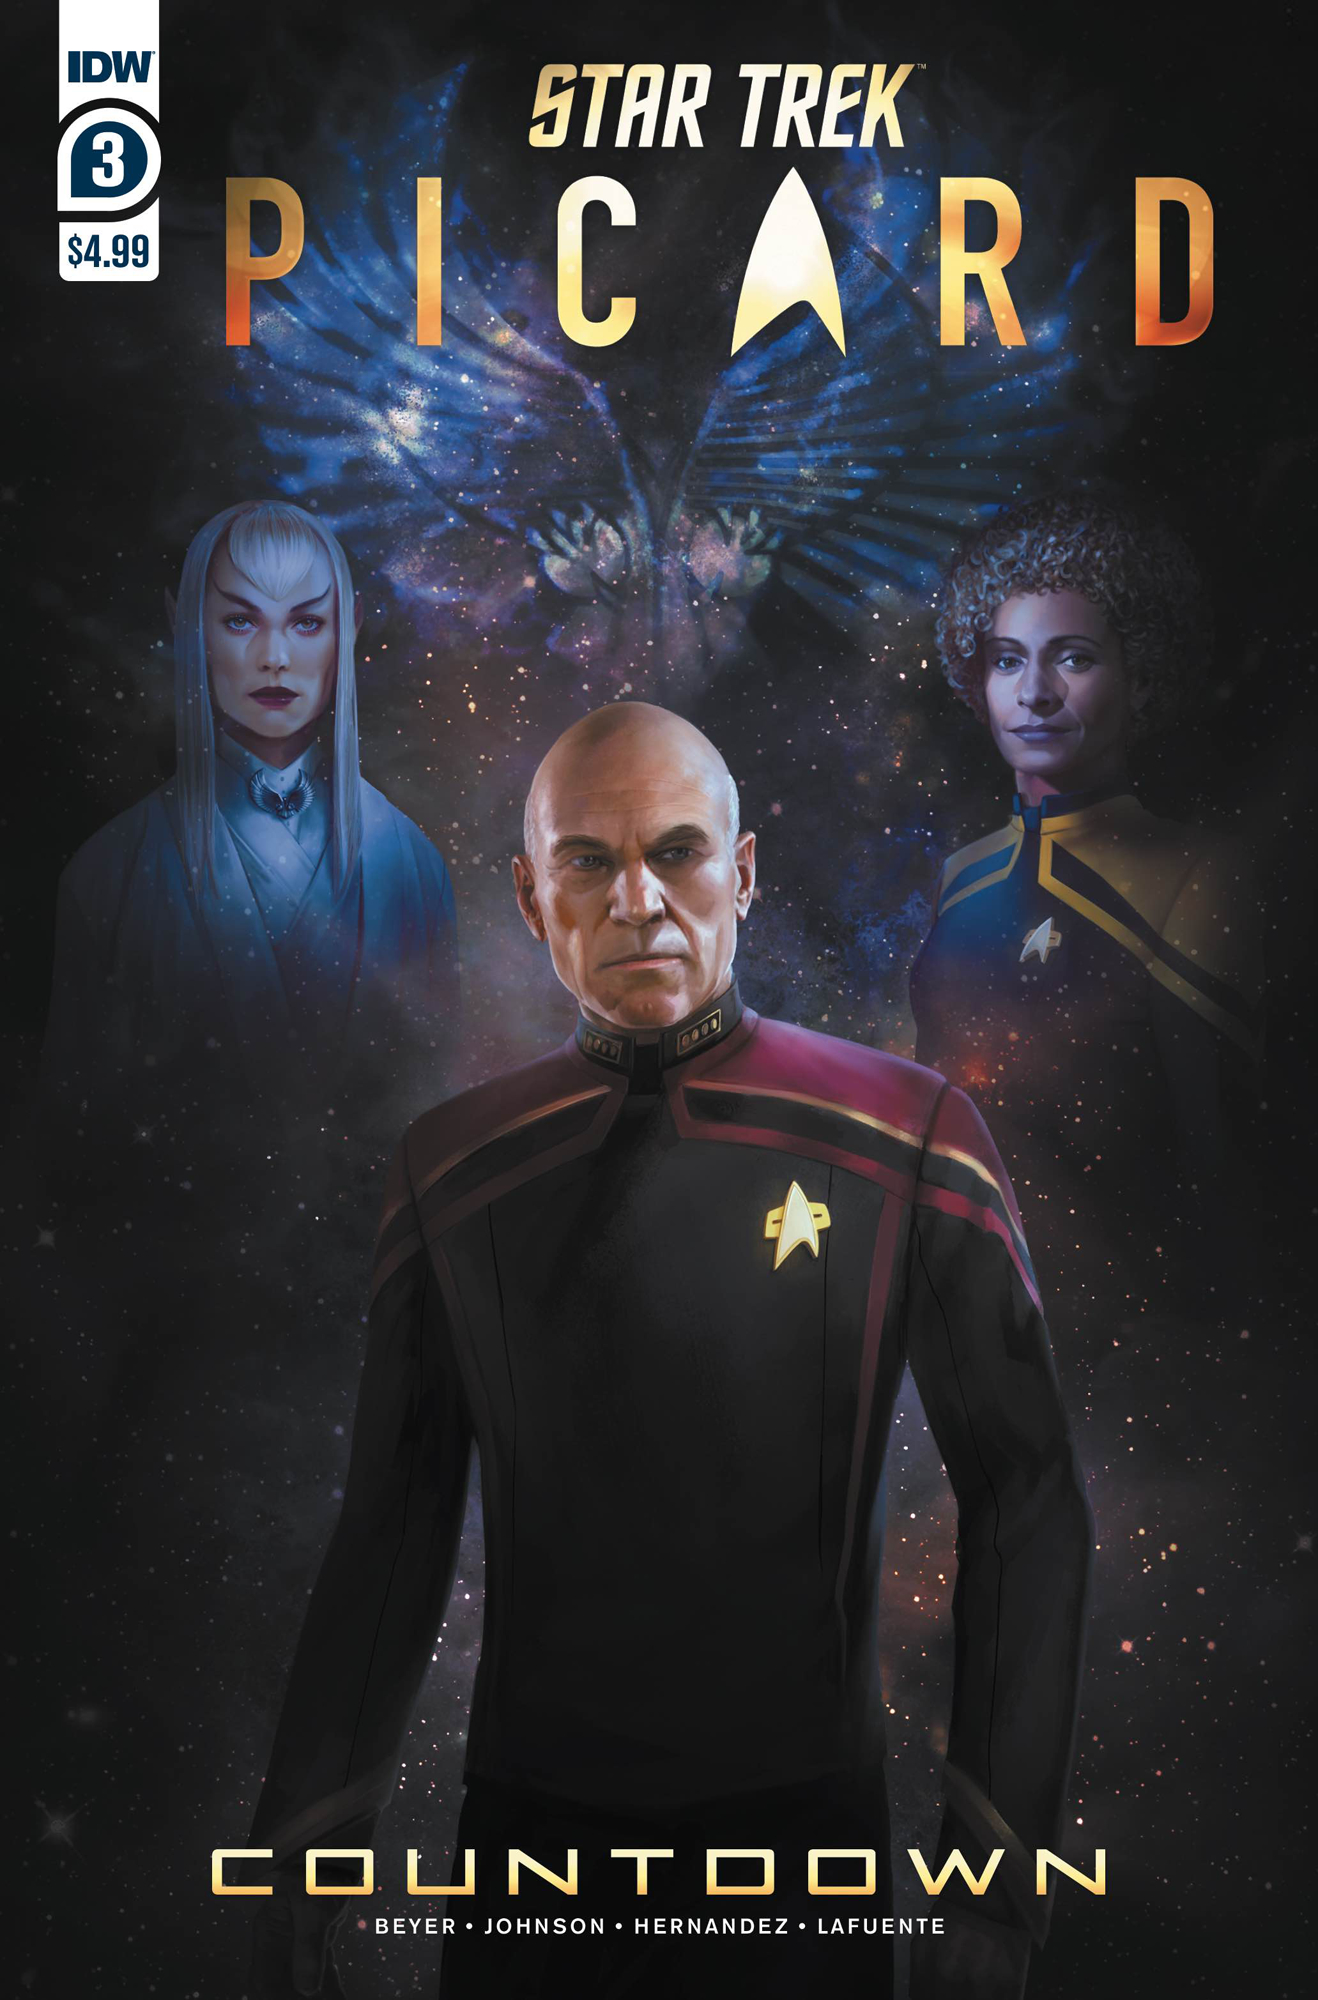 STAR TREK PICARD #3 (OF 3) CVR A PITRE-DUROCHER